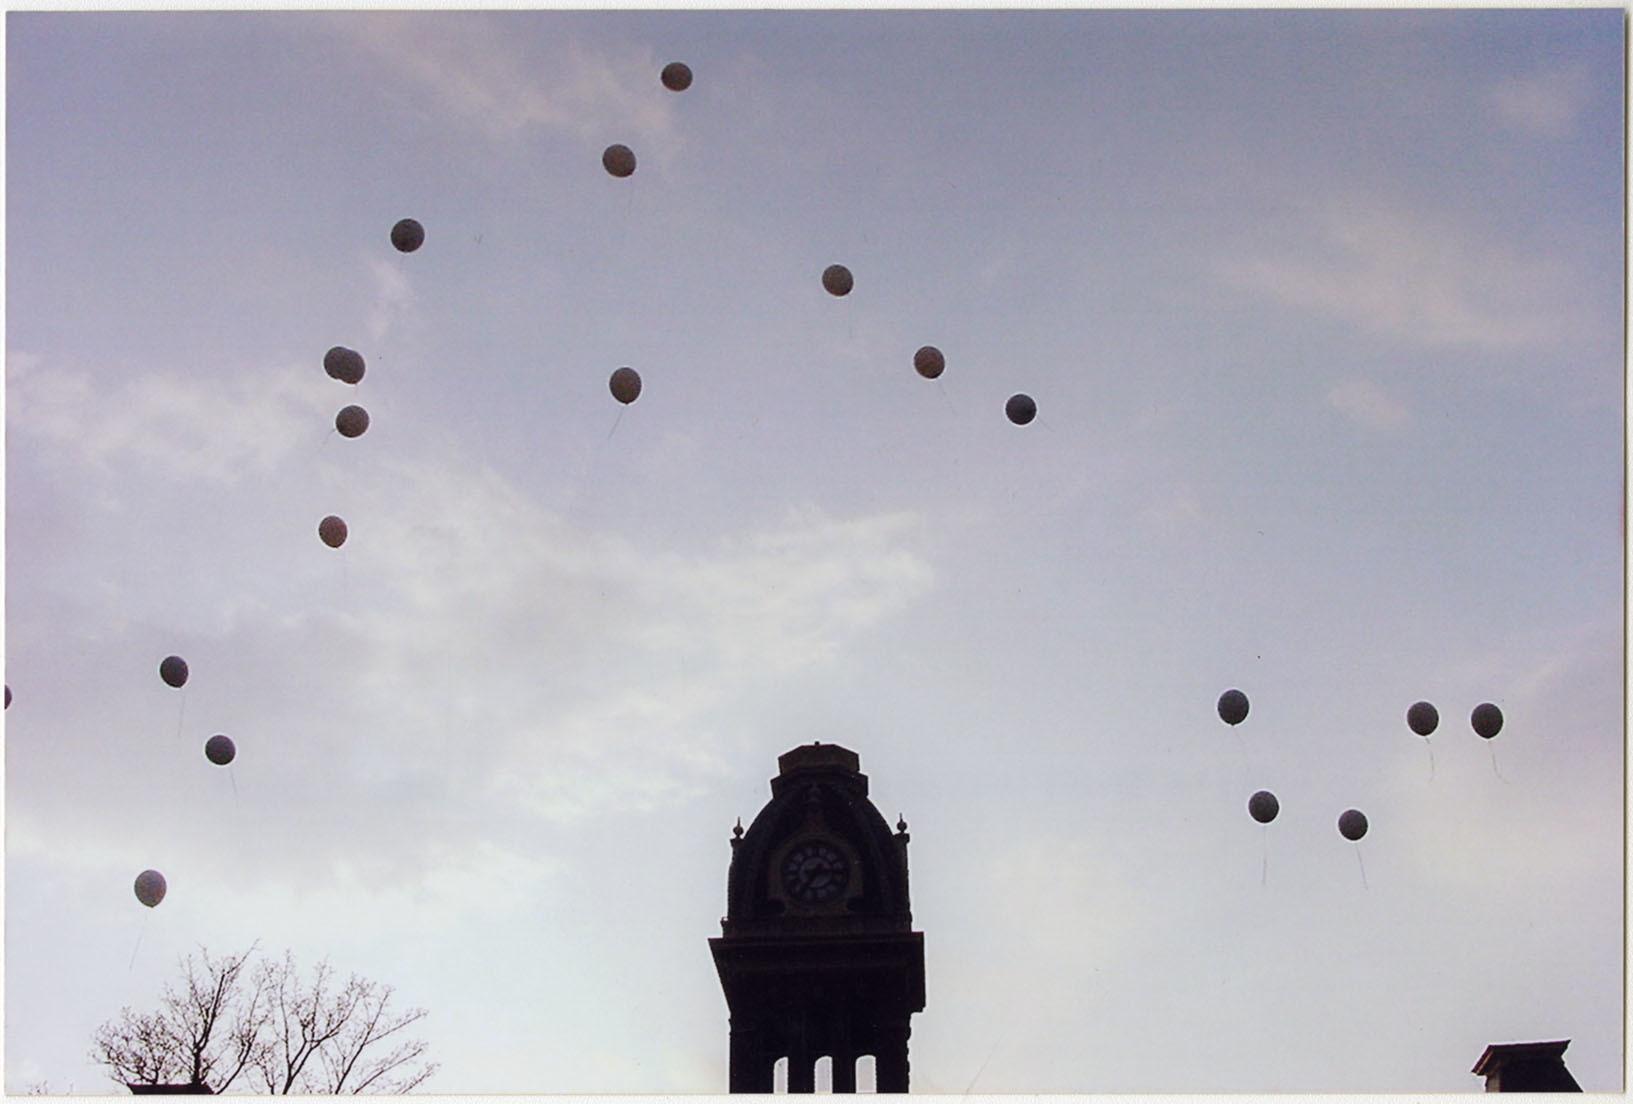 Photograph of Balloons Release, F00048 (Ms2008-020)